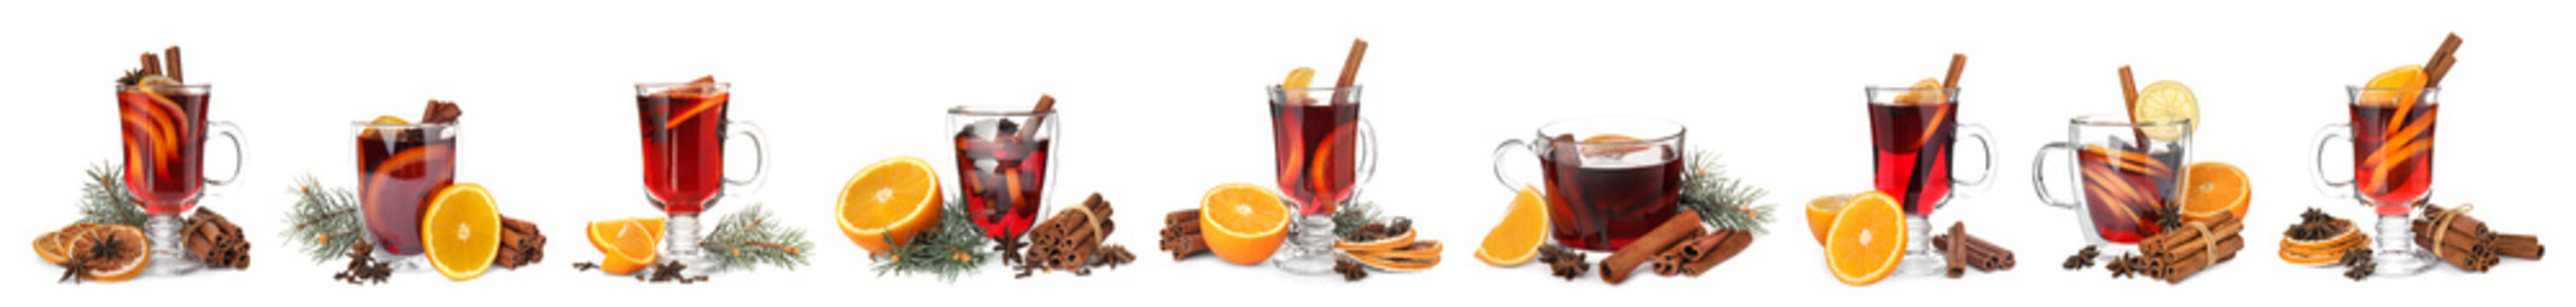 Set of traditional Christmas mulled wine in different glasses on white background